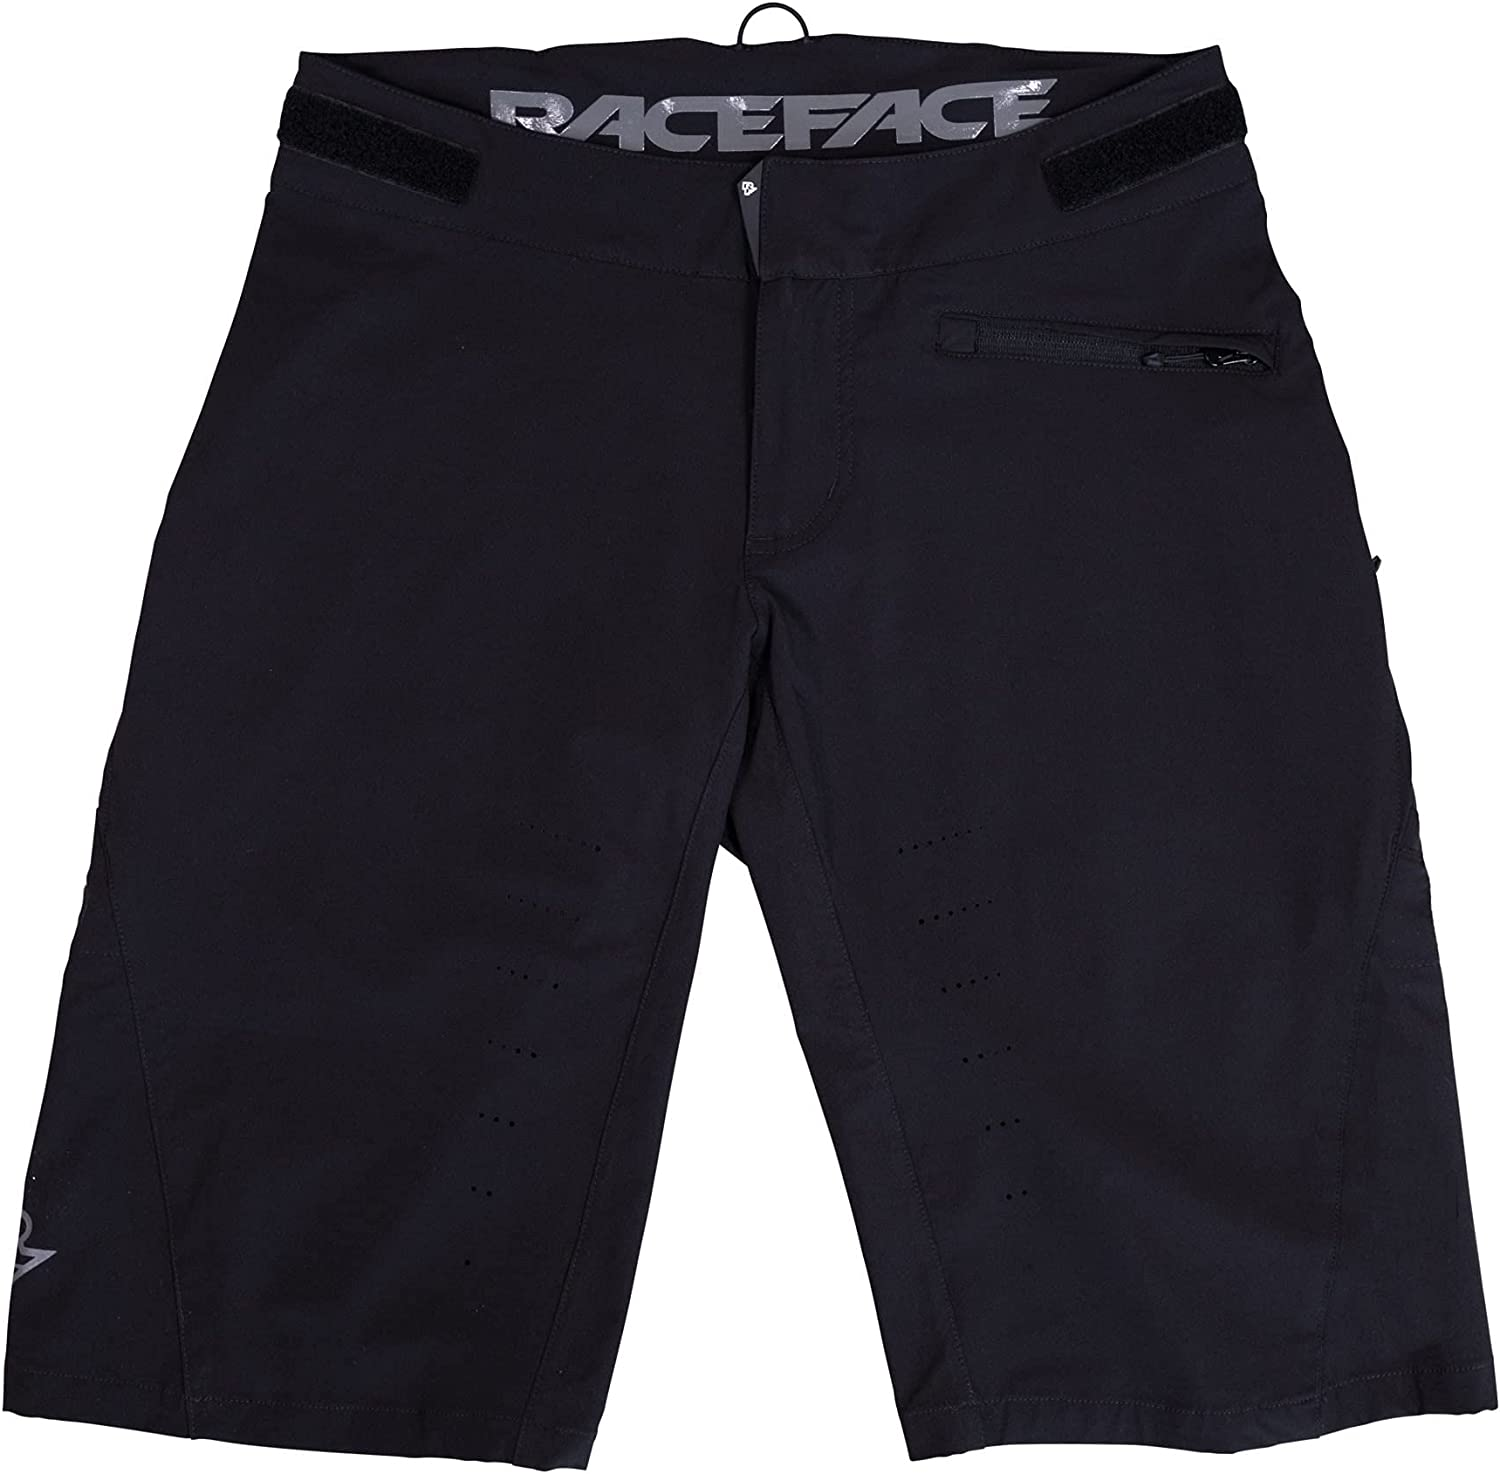 Race Face Indy - Short Women's Beauty It is very popular products